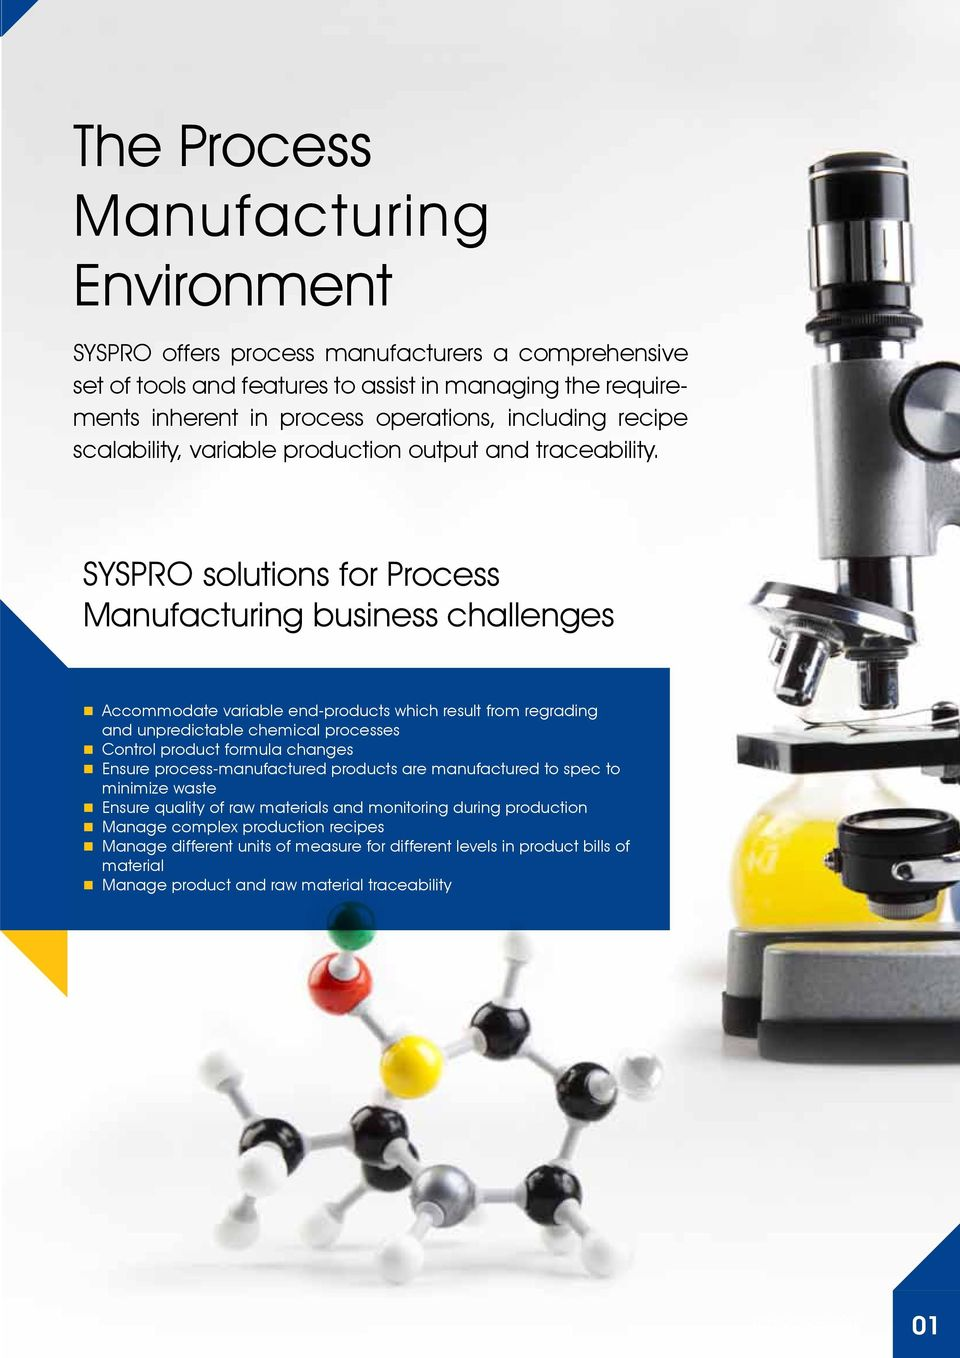 SYSPRO solutions for Process Manufacturing business challenges Accommodate variable end-products which result from regrading and unpredictable chemical processes Control product formula